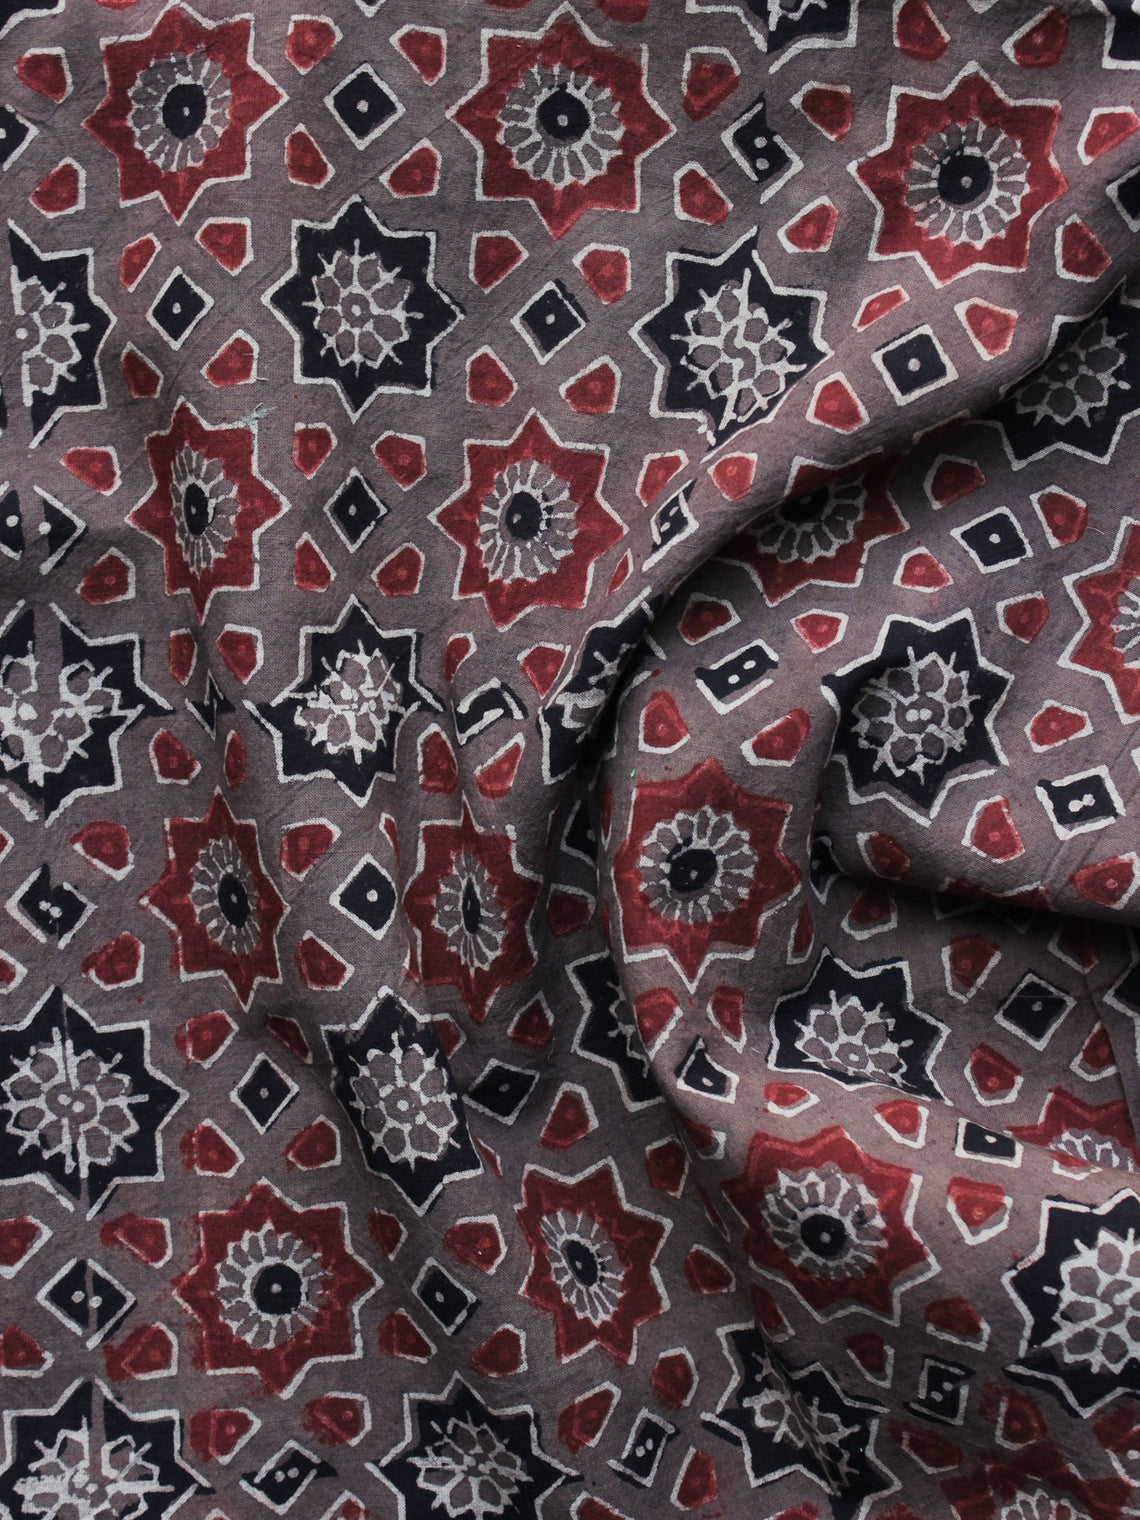 Brown Red Black Ajrakh Printed Cotton Fabric Per Meter - F003F1194